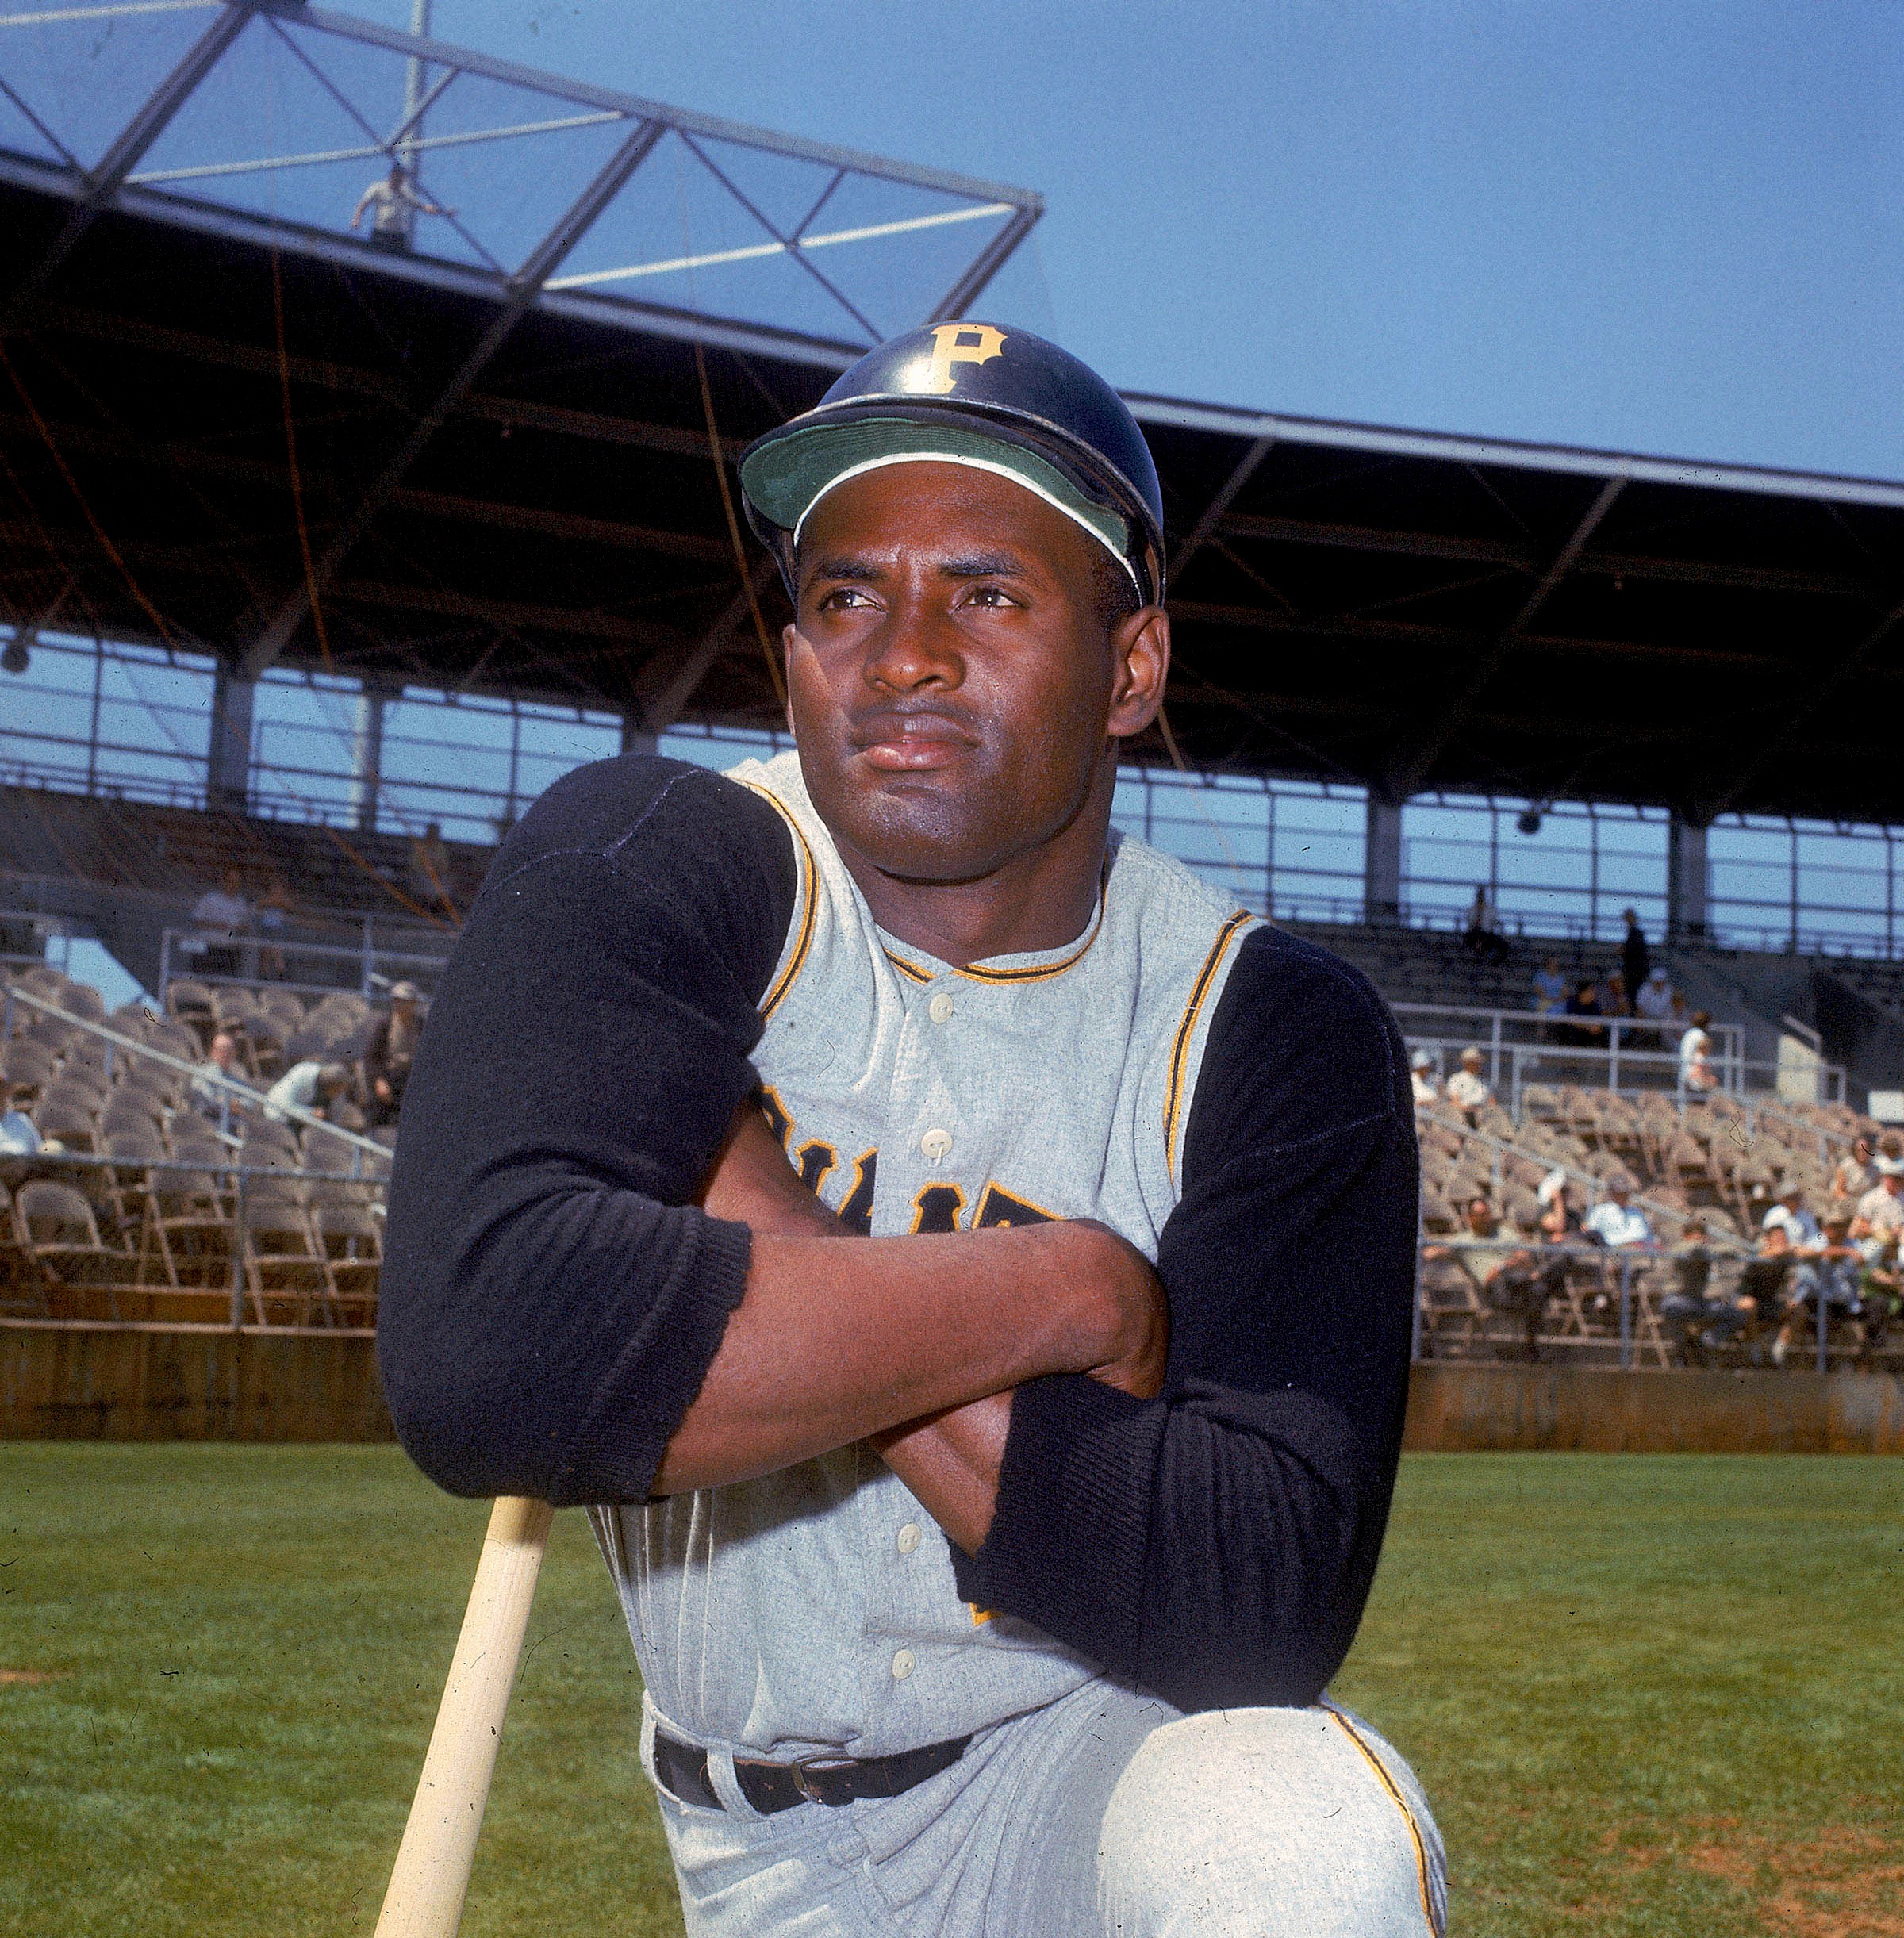 the life and baseball career of roberto clemente It's hard to explain what roberto clemente means to puerto rico  being a  major league baseball player from puerto rico, visiting this place  roberto  clemente and his legacy had become a huge part of my life and my.